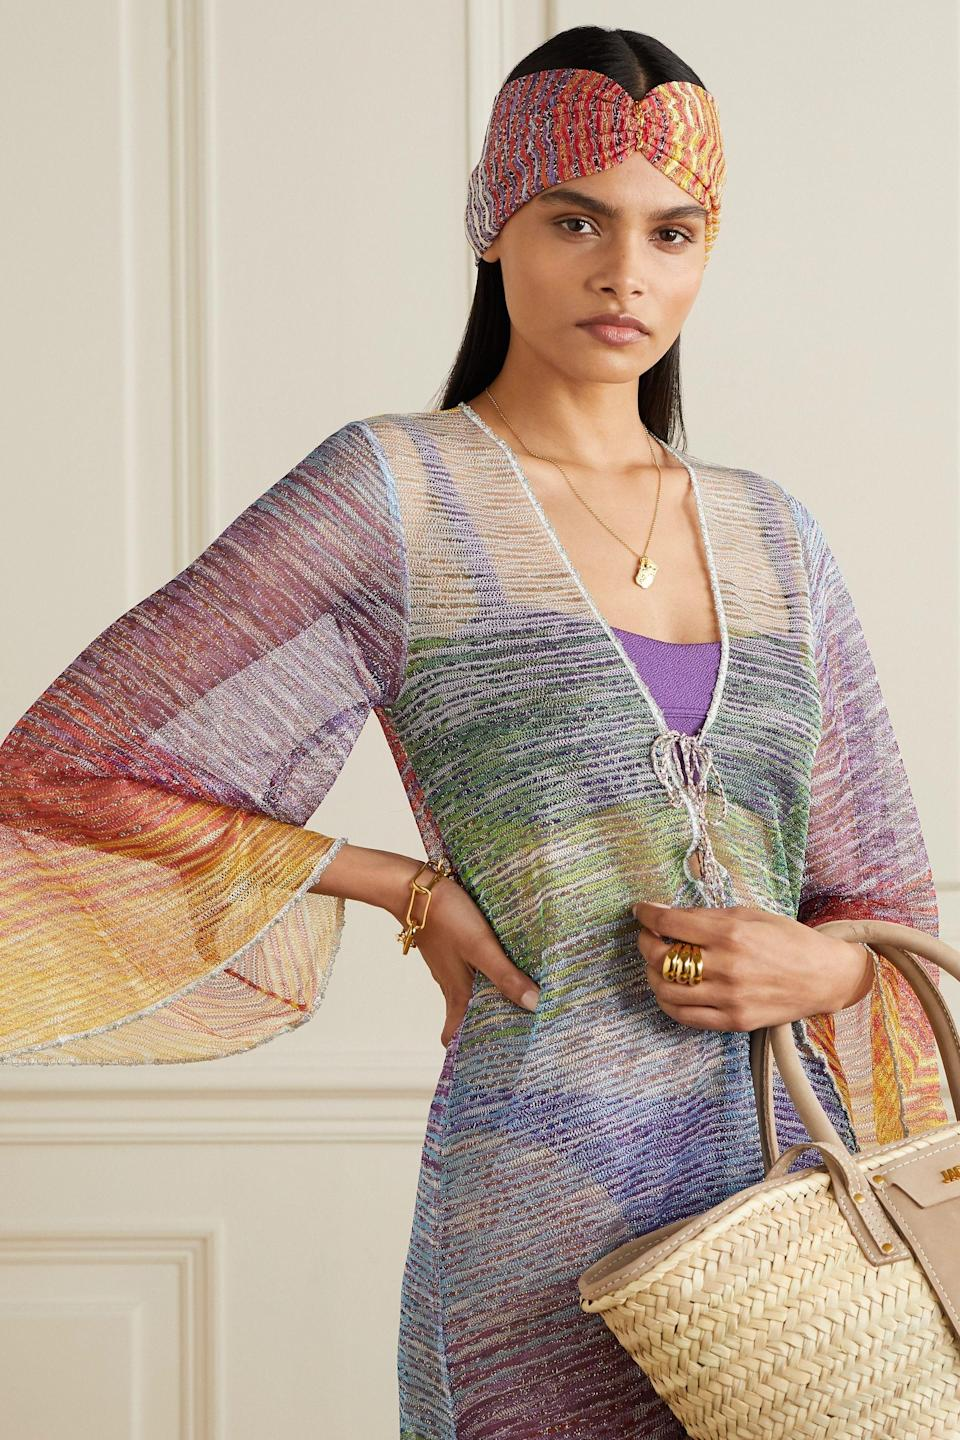 """<p><strong>Missoni</strong></p><p>net-a-porter.com</p><p><strong>$195.00</strong></p><p><a href=""""https://go.redirectingat.com?id=74968X1596630&url=https%3A%2F%2Fwww.net-a-porter.com%2Fen-us%2Fshop%2Fproduct%2Fmissoni%2Fcrochet-knit-headband%2F1254247&sref=https%3A%2F%2Fwww.cosmopolitan.com%2Fstyle-beauty%2Ffashion%2Fg35845953%2Fbest-knot-headbands%2F"""" rel=""""nofollow noopener"""" target=""""_blank"""" data-ylk=""""slk:Shop Now"""" class=""""link rapid-noclick-resp"""">Shop Now</a></p><p>Take a styling tip from this image and wear your headband with your beach day look. Not only will it keep your hair out of your face, but you'll also look supes chic.</p>"""